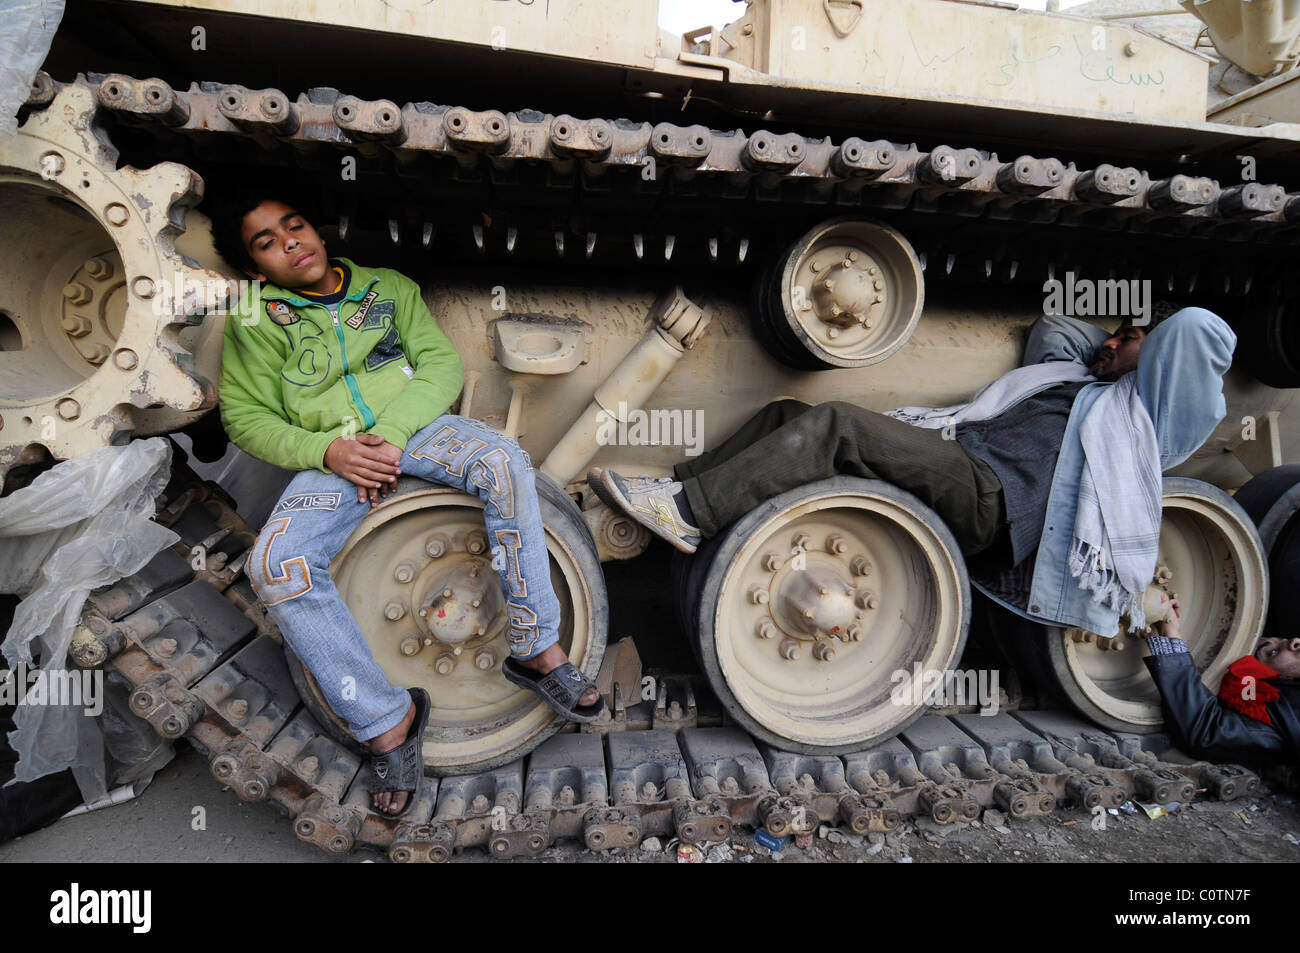 Anti-Mubarak protesters sleeping between the wheels of an Egyptian army tank in Tahrir square in Cairo, Egypt - Stock Image